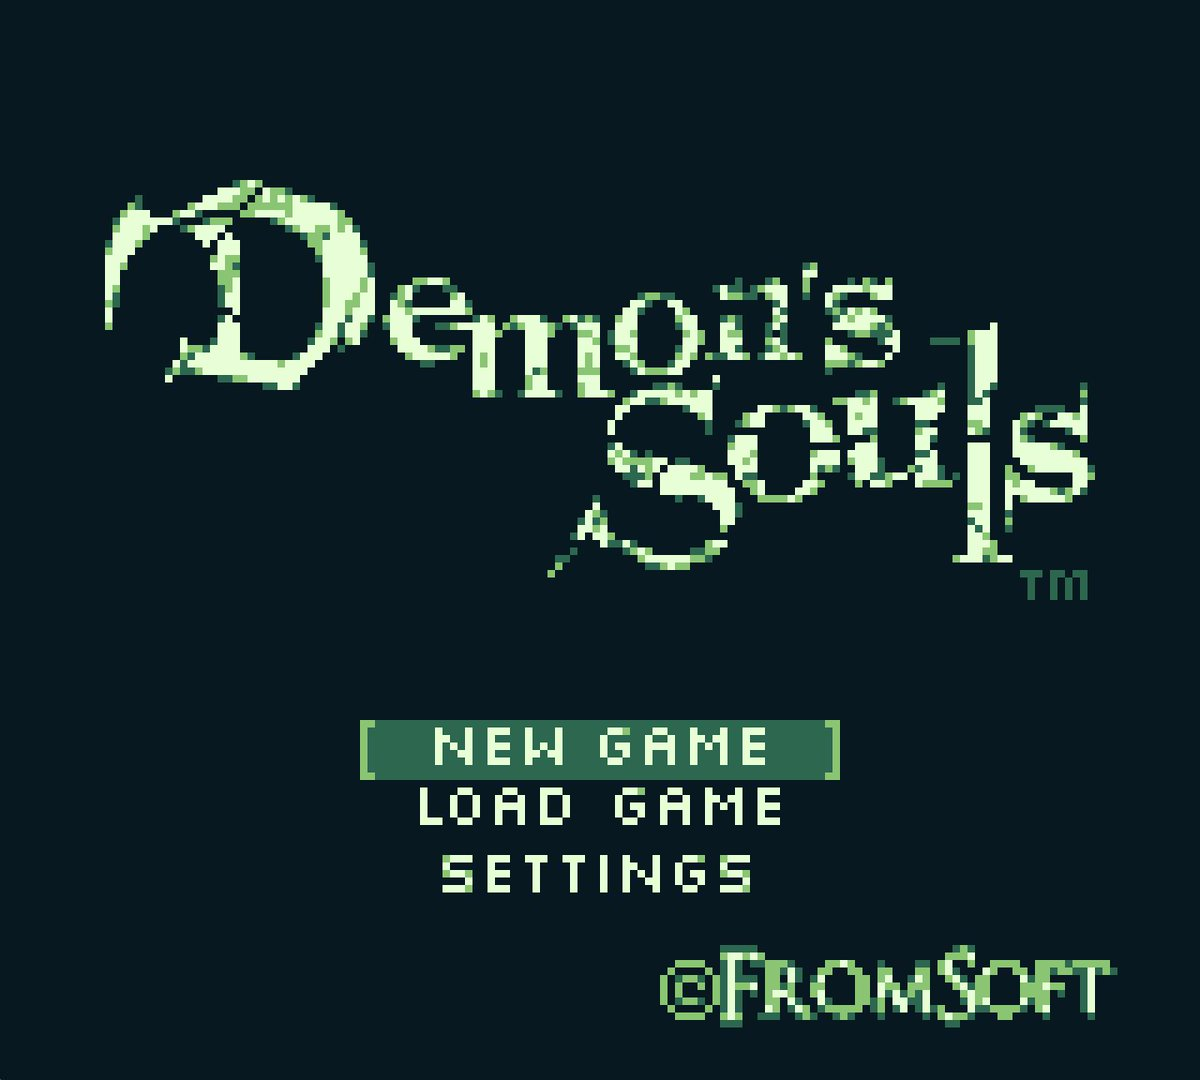 Happy 30th, #gameboy ! Here&#39;s my Demon&#39;s Souls demake in all it&#39;s 4 color glory! #pixelart #retro #gamedev #gameboy30th<br>http://pic.twitter.com/oH3mY7YWfp